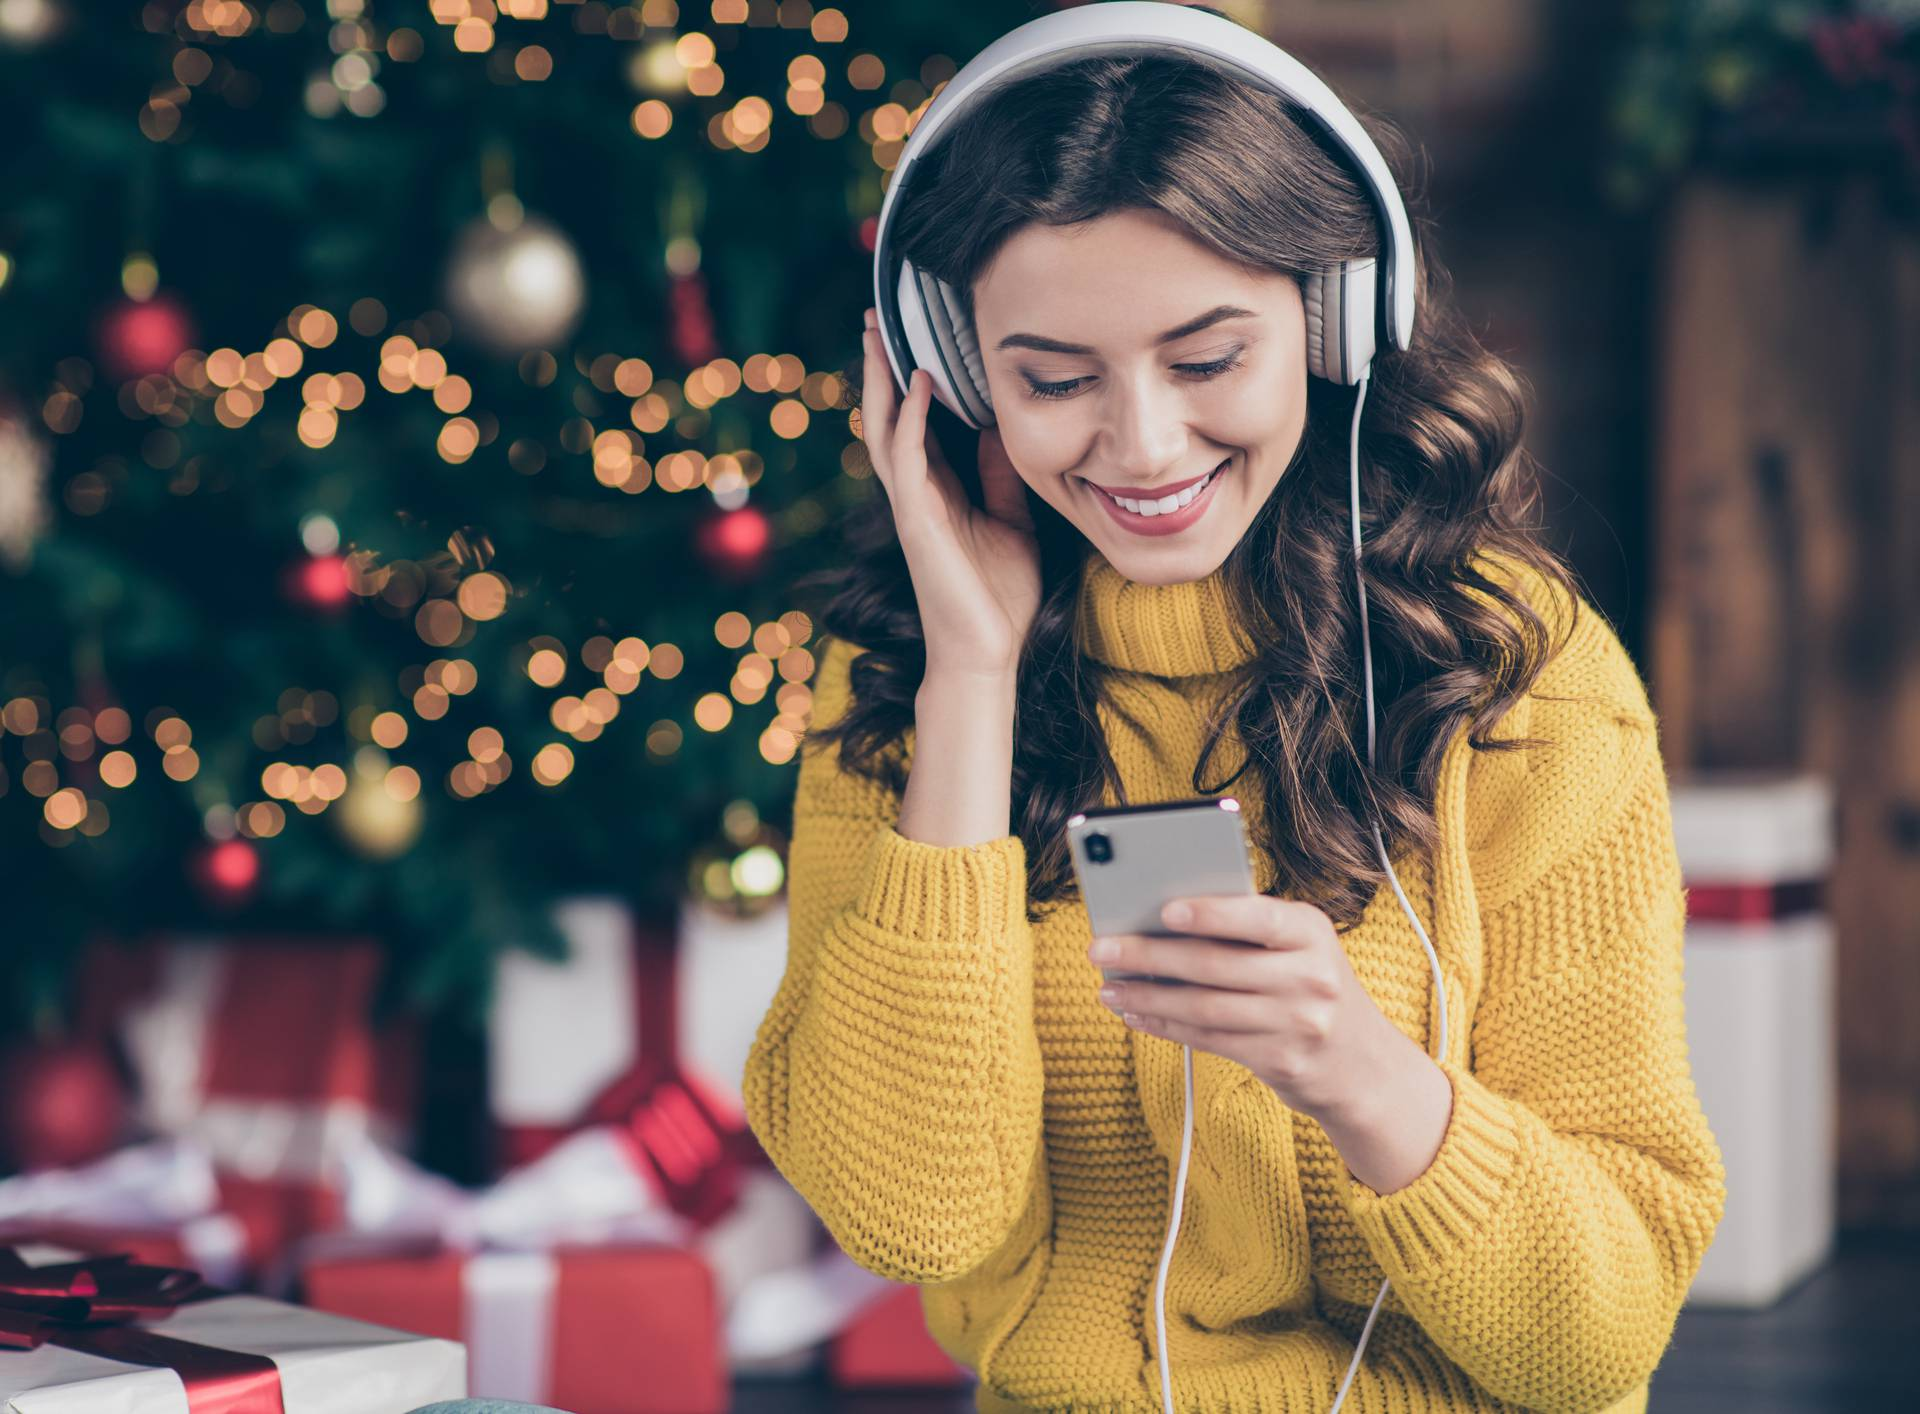 Photo of charming beautiful wavy curly haired girl listening to music wearing yellow pullover staring at telephone screen